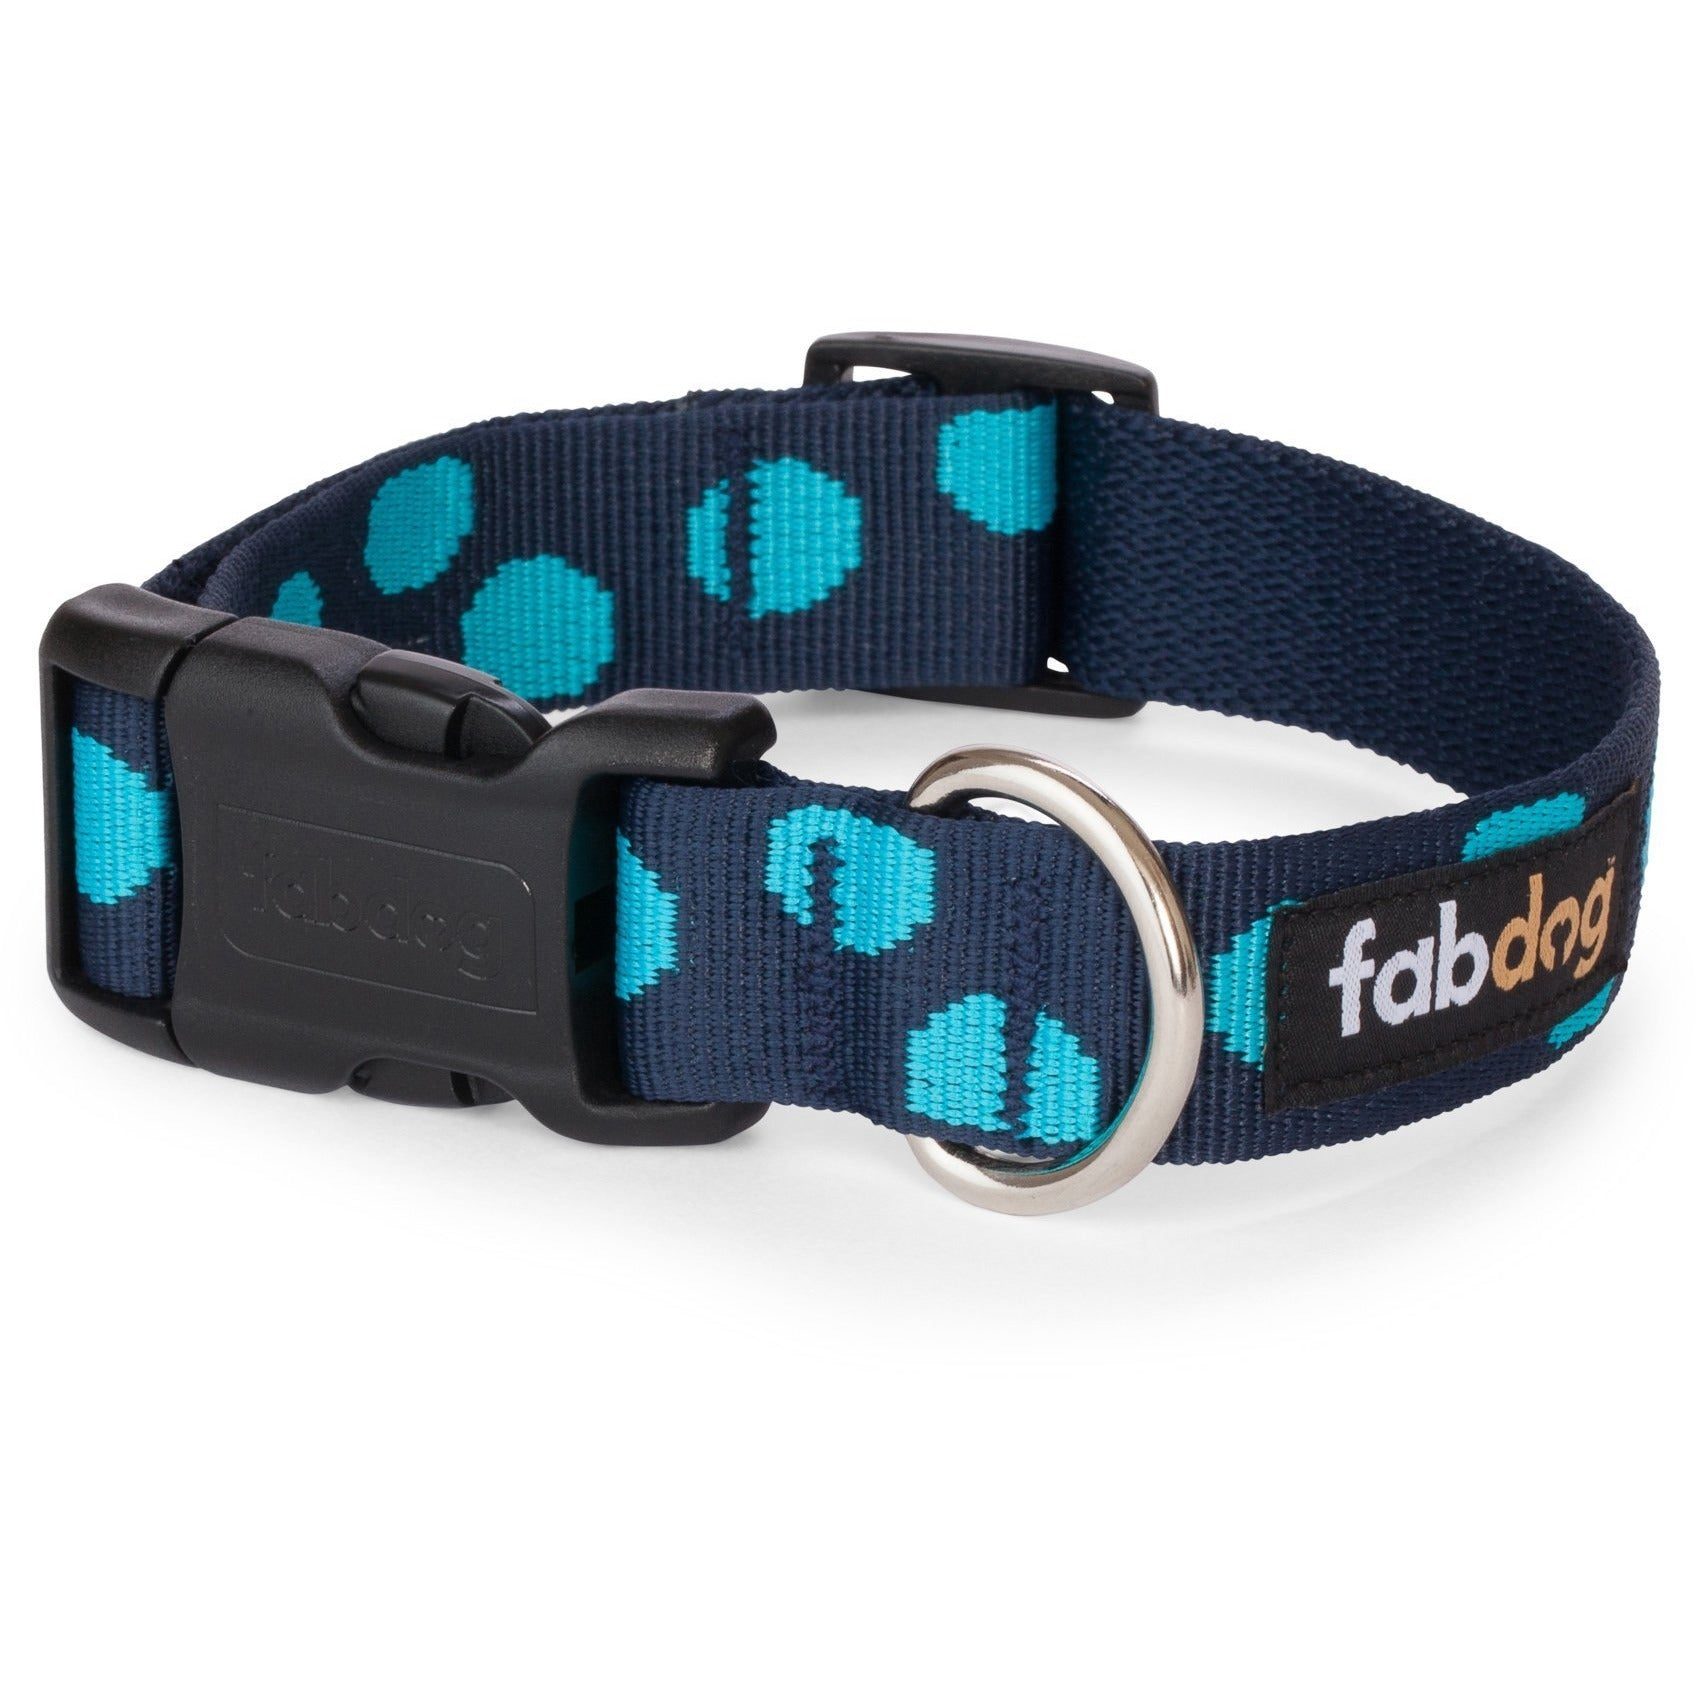 fabdog collar Blue polkadot dog collar by Fabdog